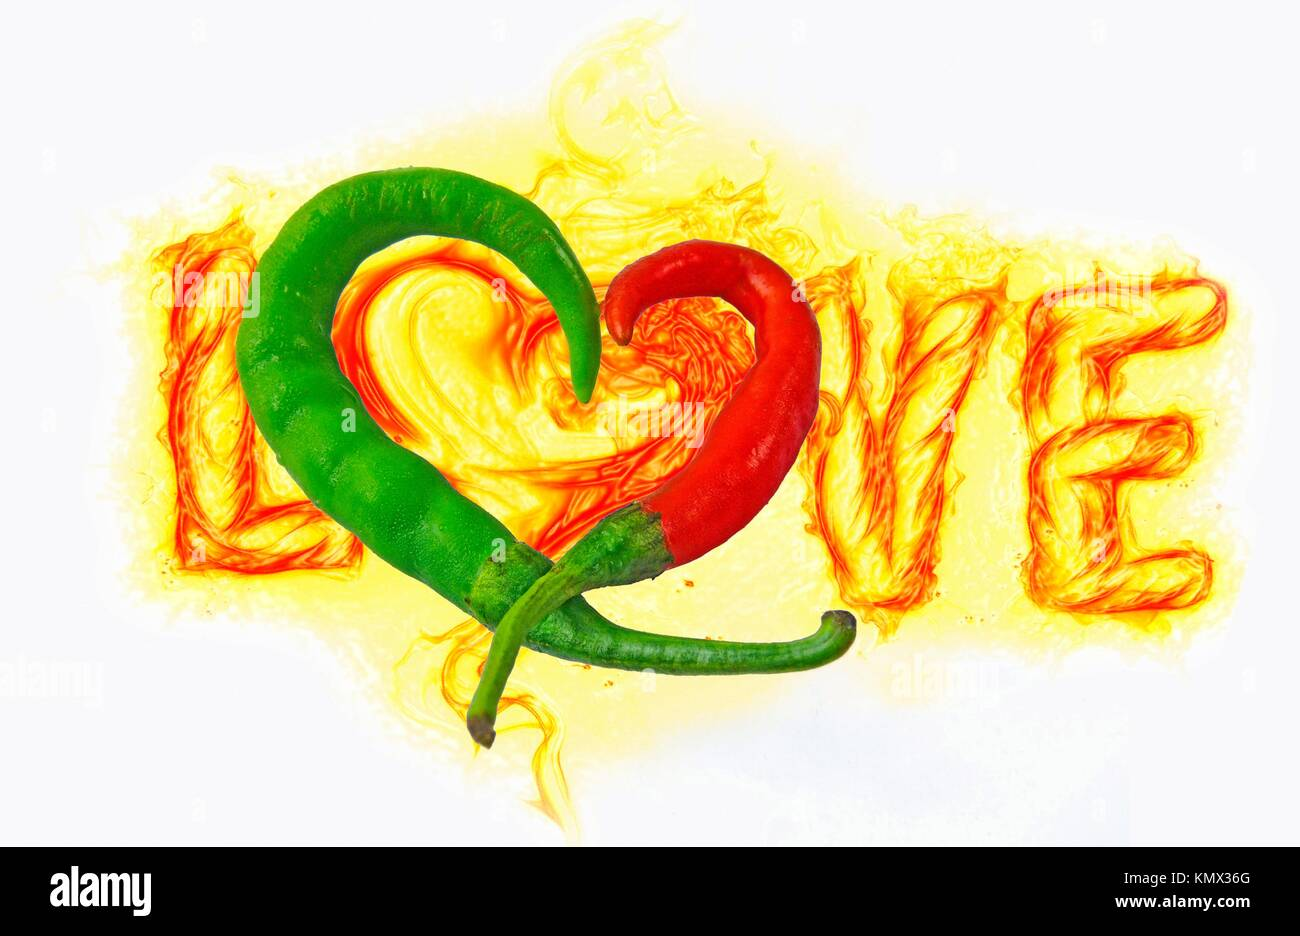 Common Chili  Capsicum annuum  Red and green chilies are kept in heart shape - Stock Image